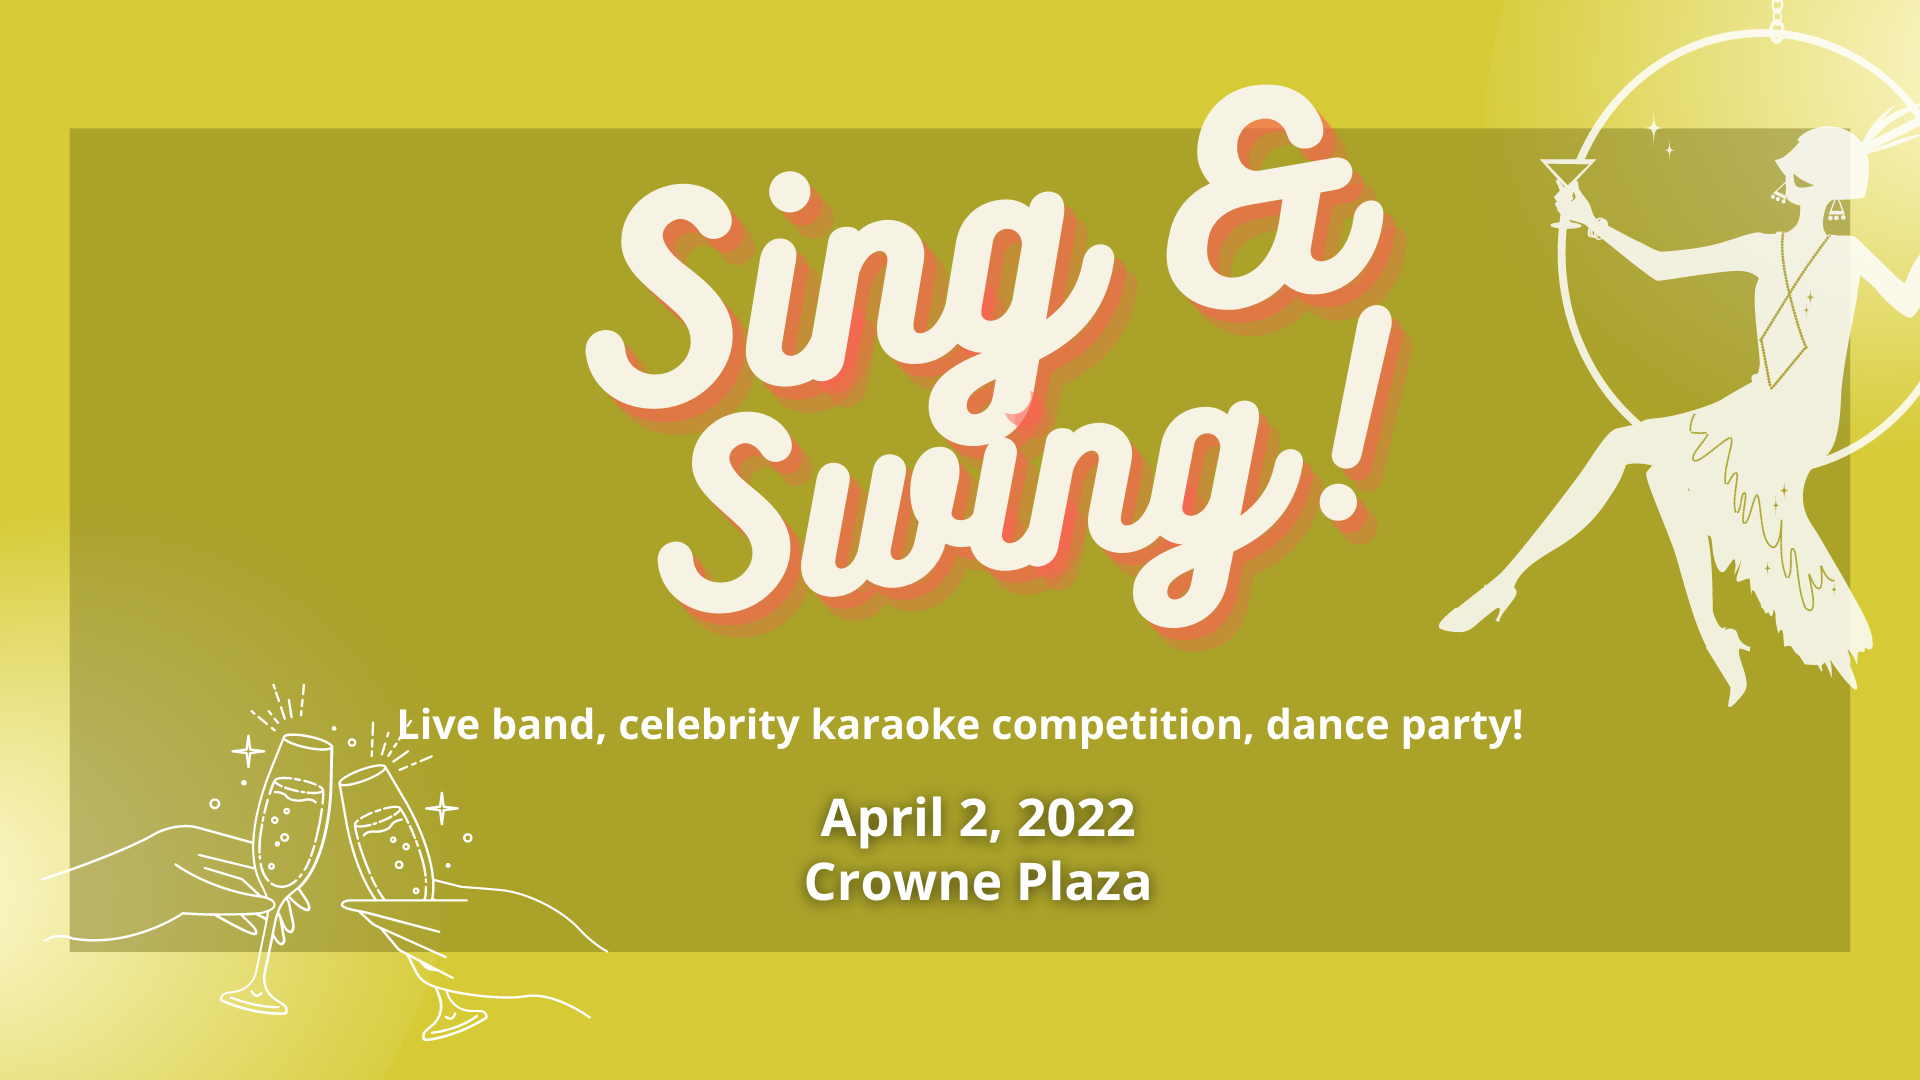 Sing and Swing April 2, 2022